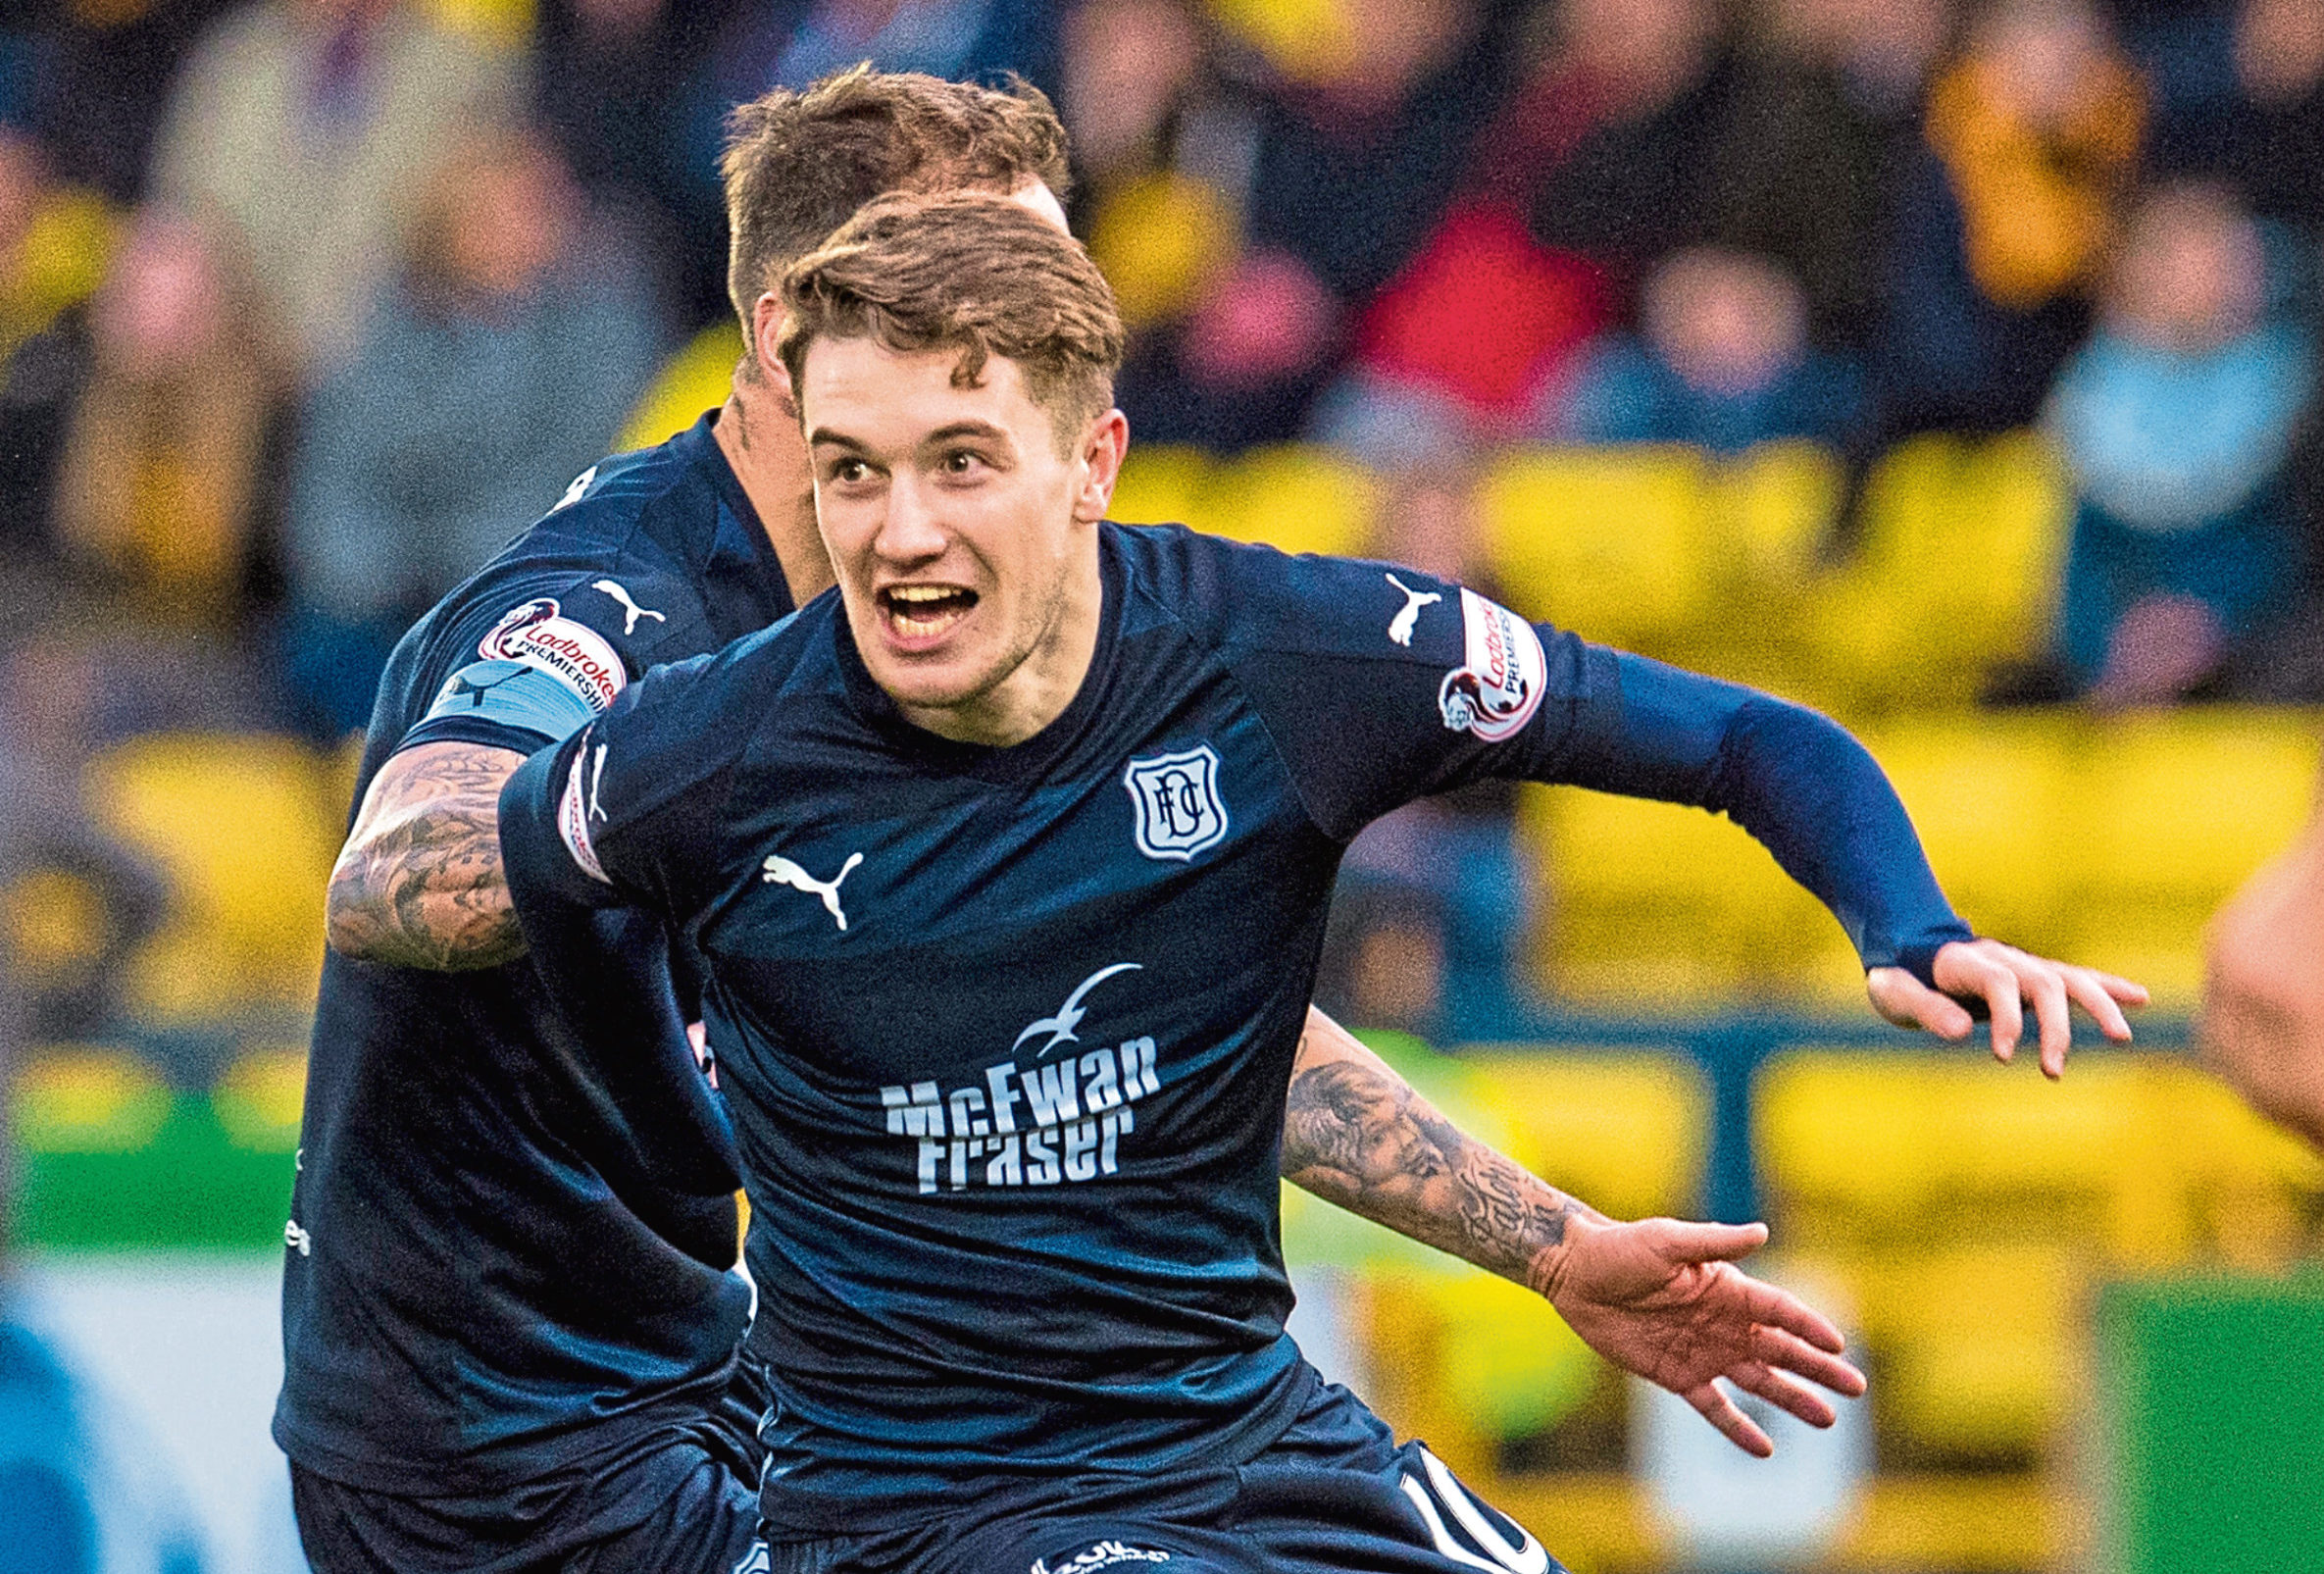 Scott Wright during his time at Dens.